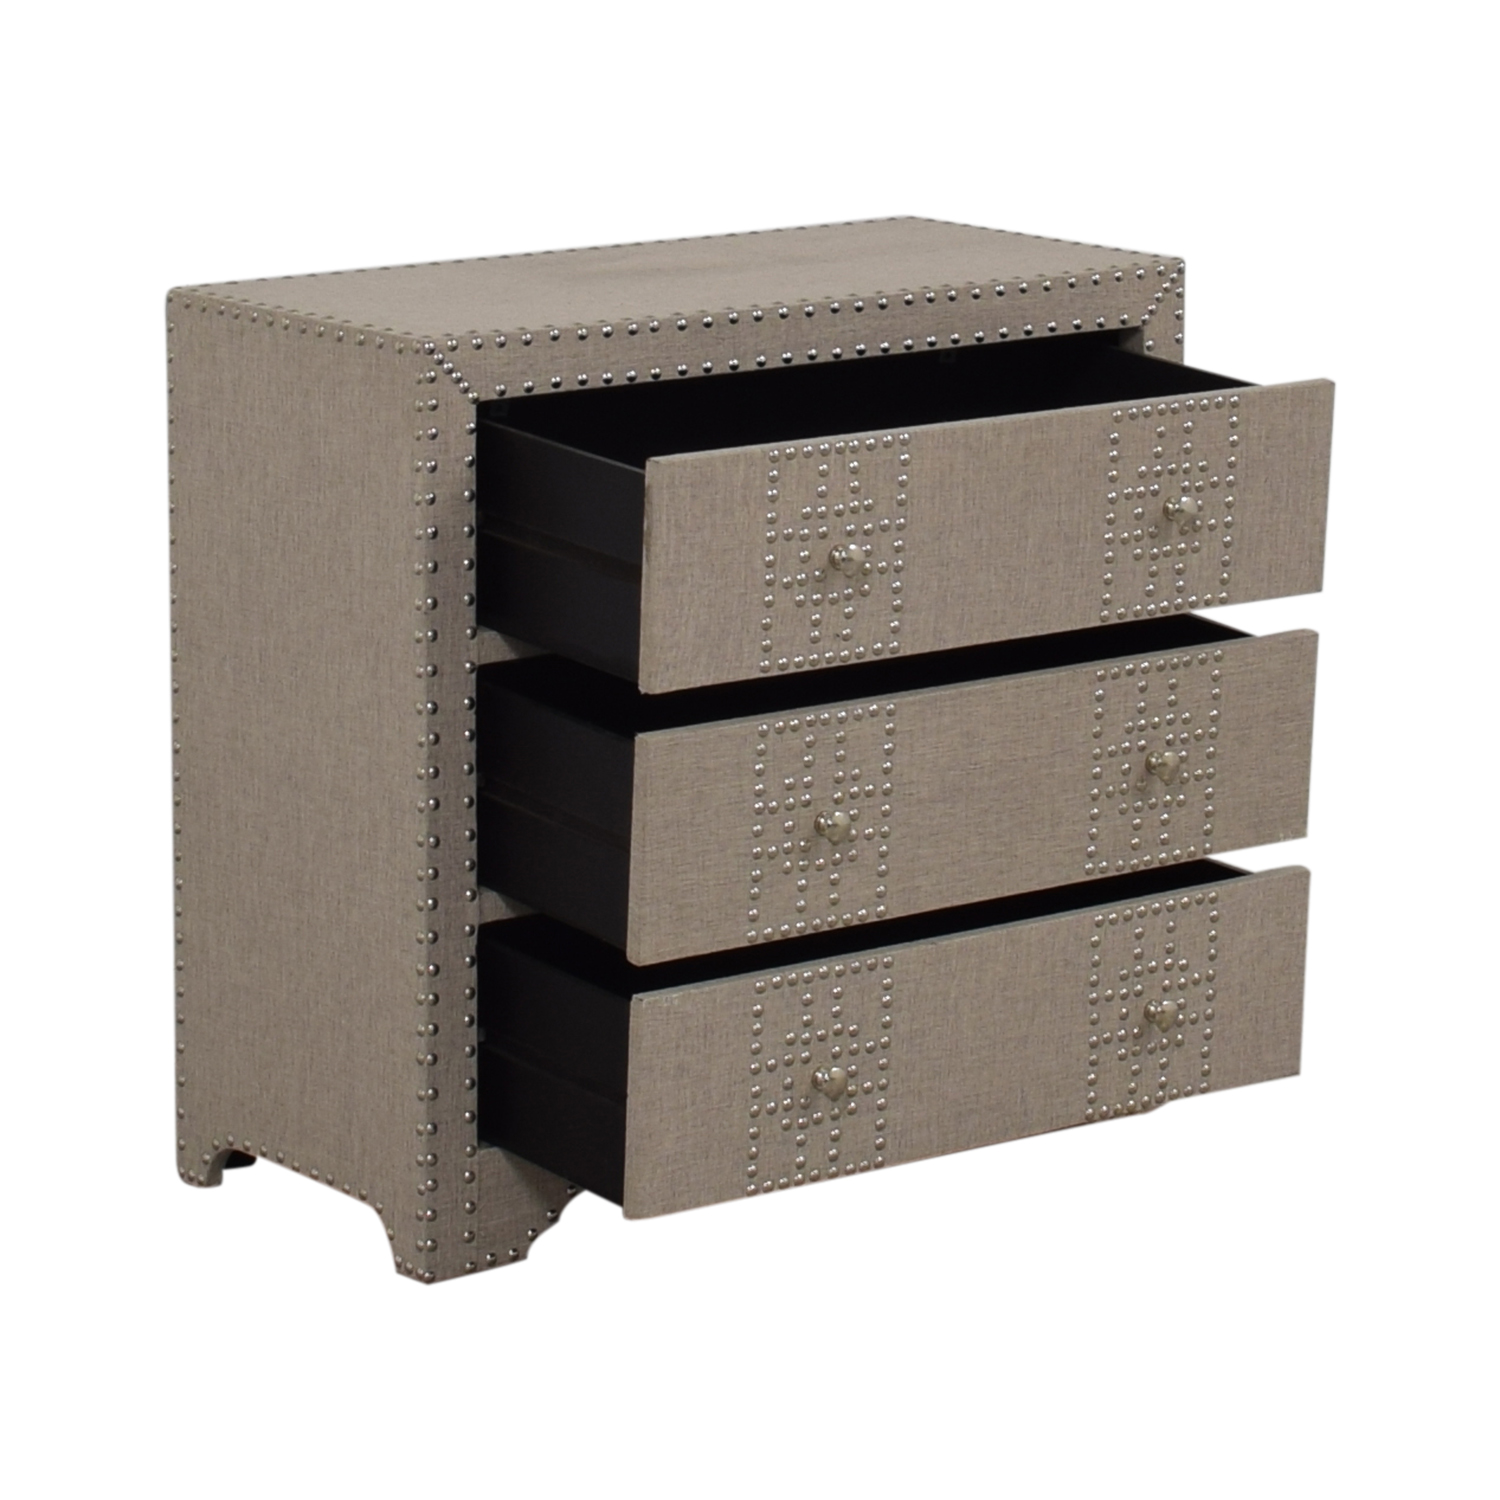 Wayfair Wayfair Gordy Grey Upholstered Nailhead Three-Drawer Dresser Storage